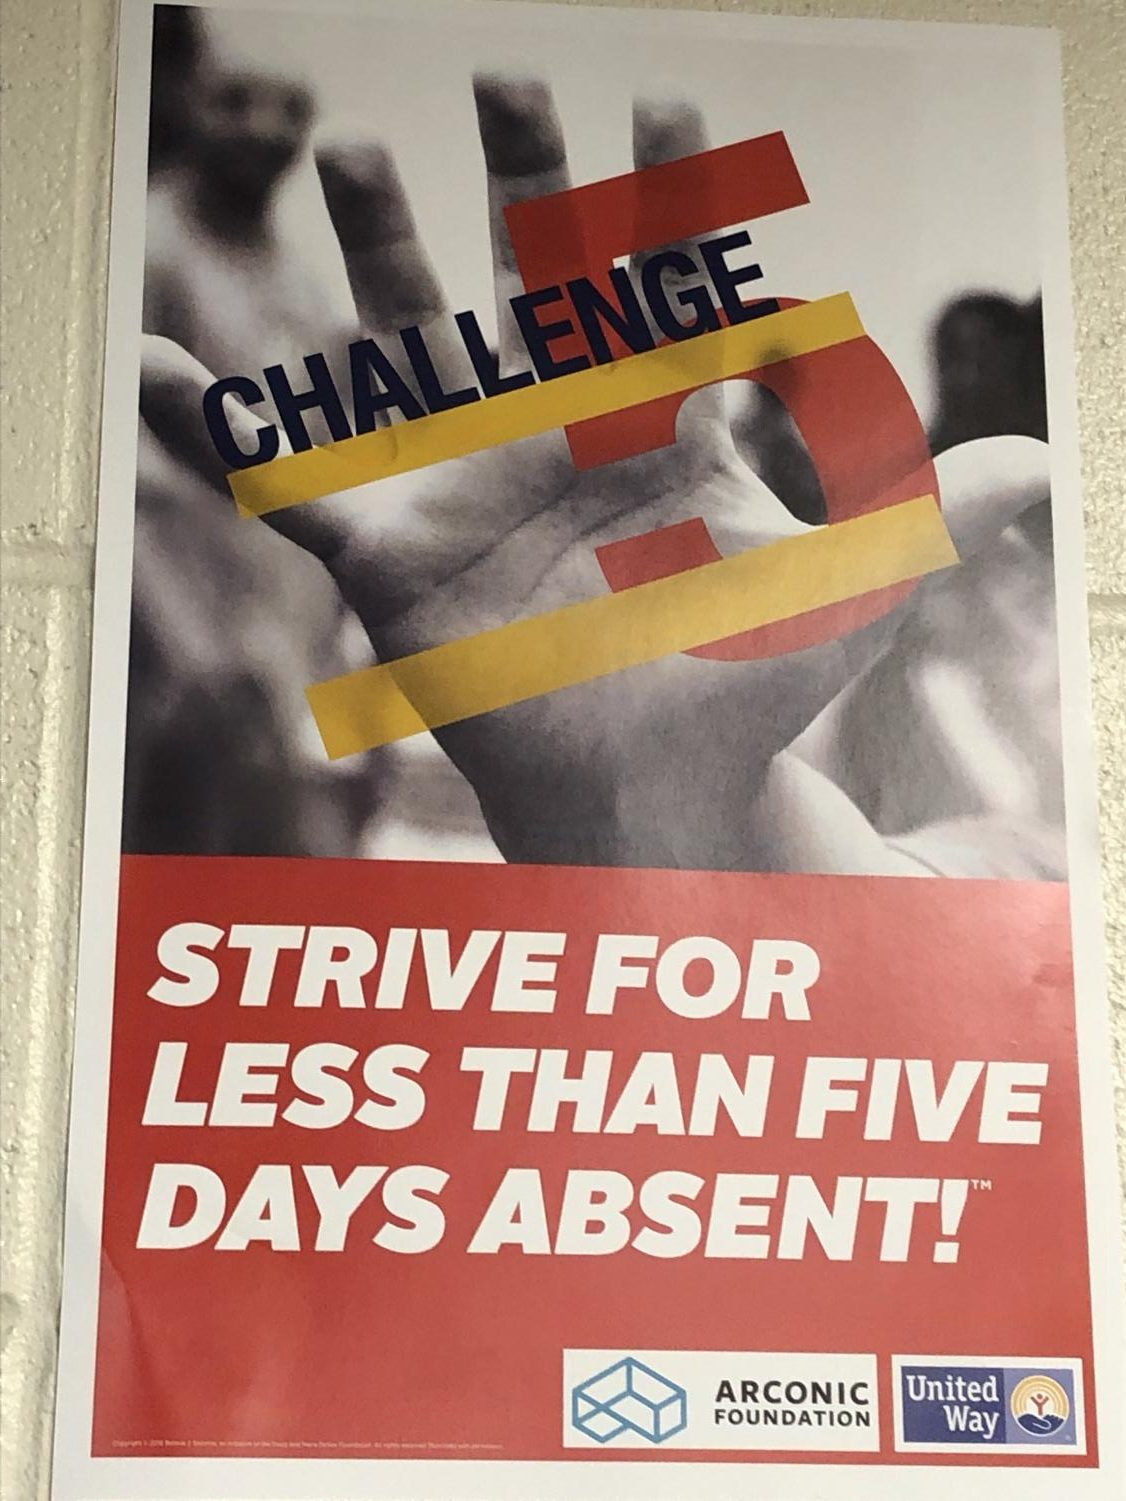 As students become more exposed to sickness, administration presses for fewer than five days